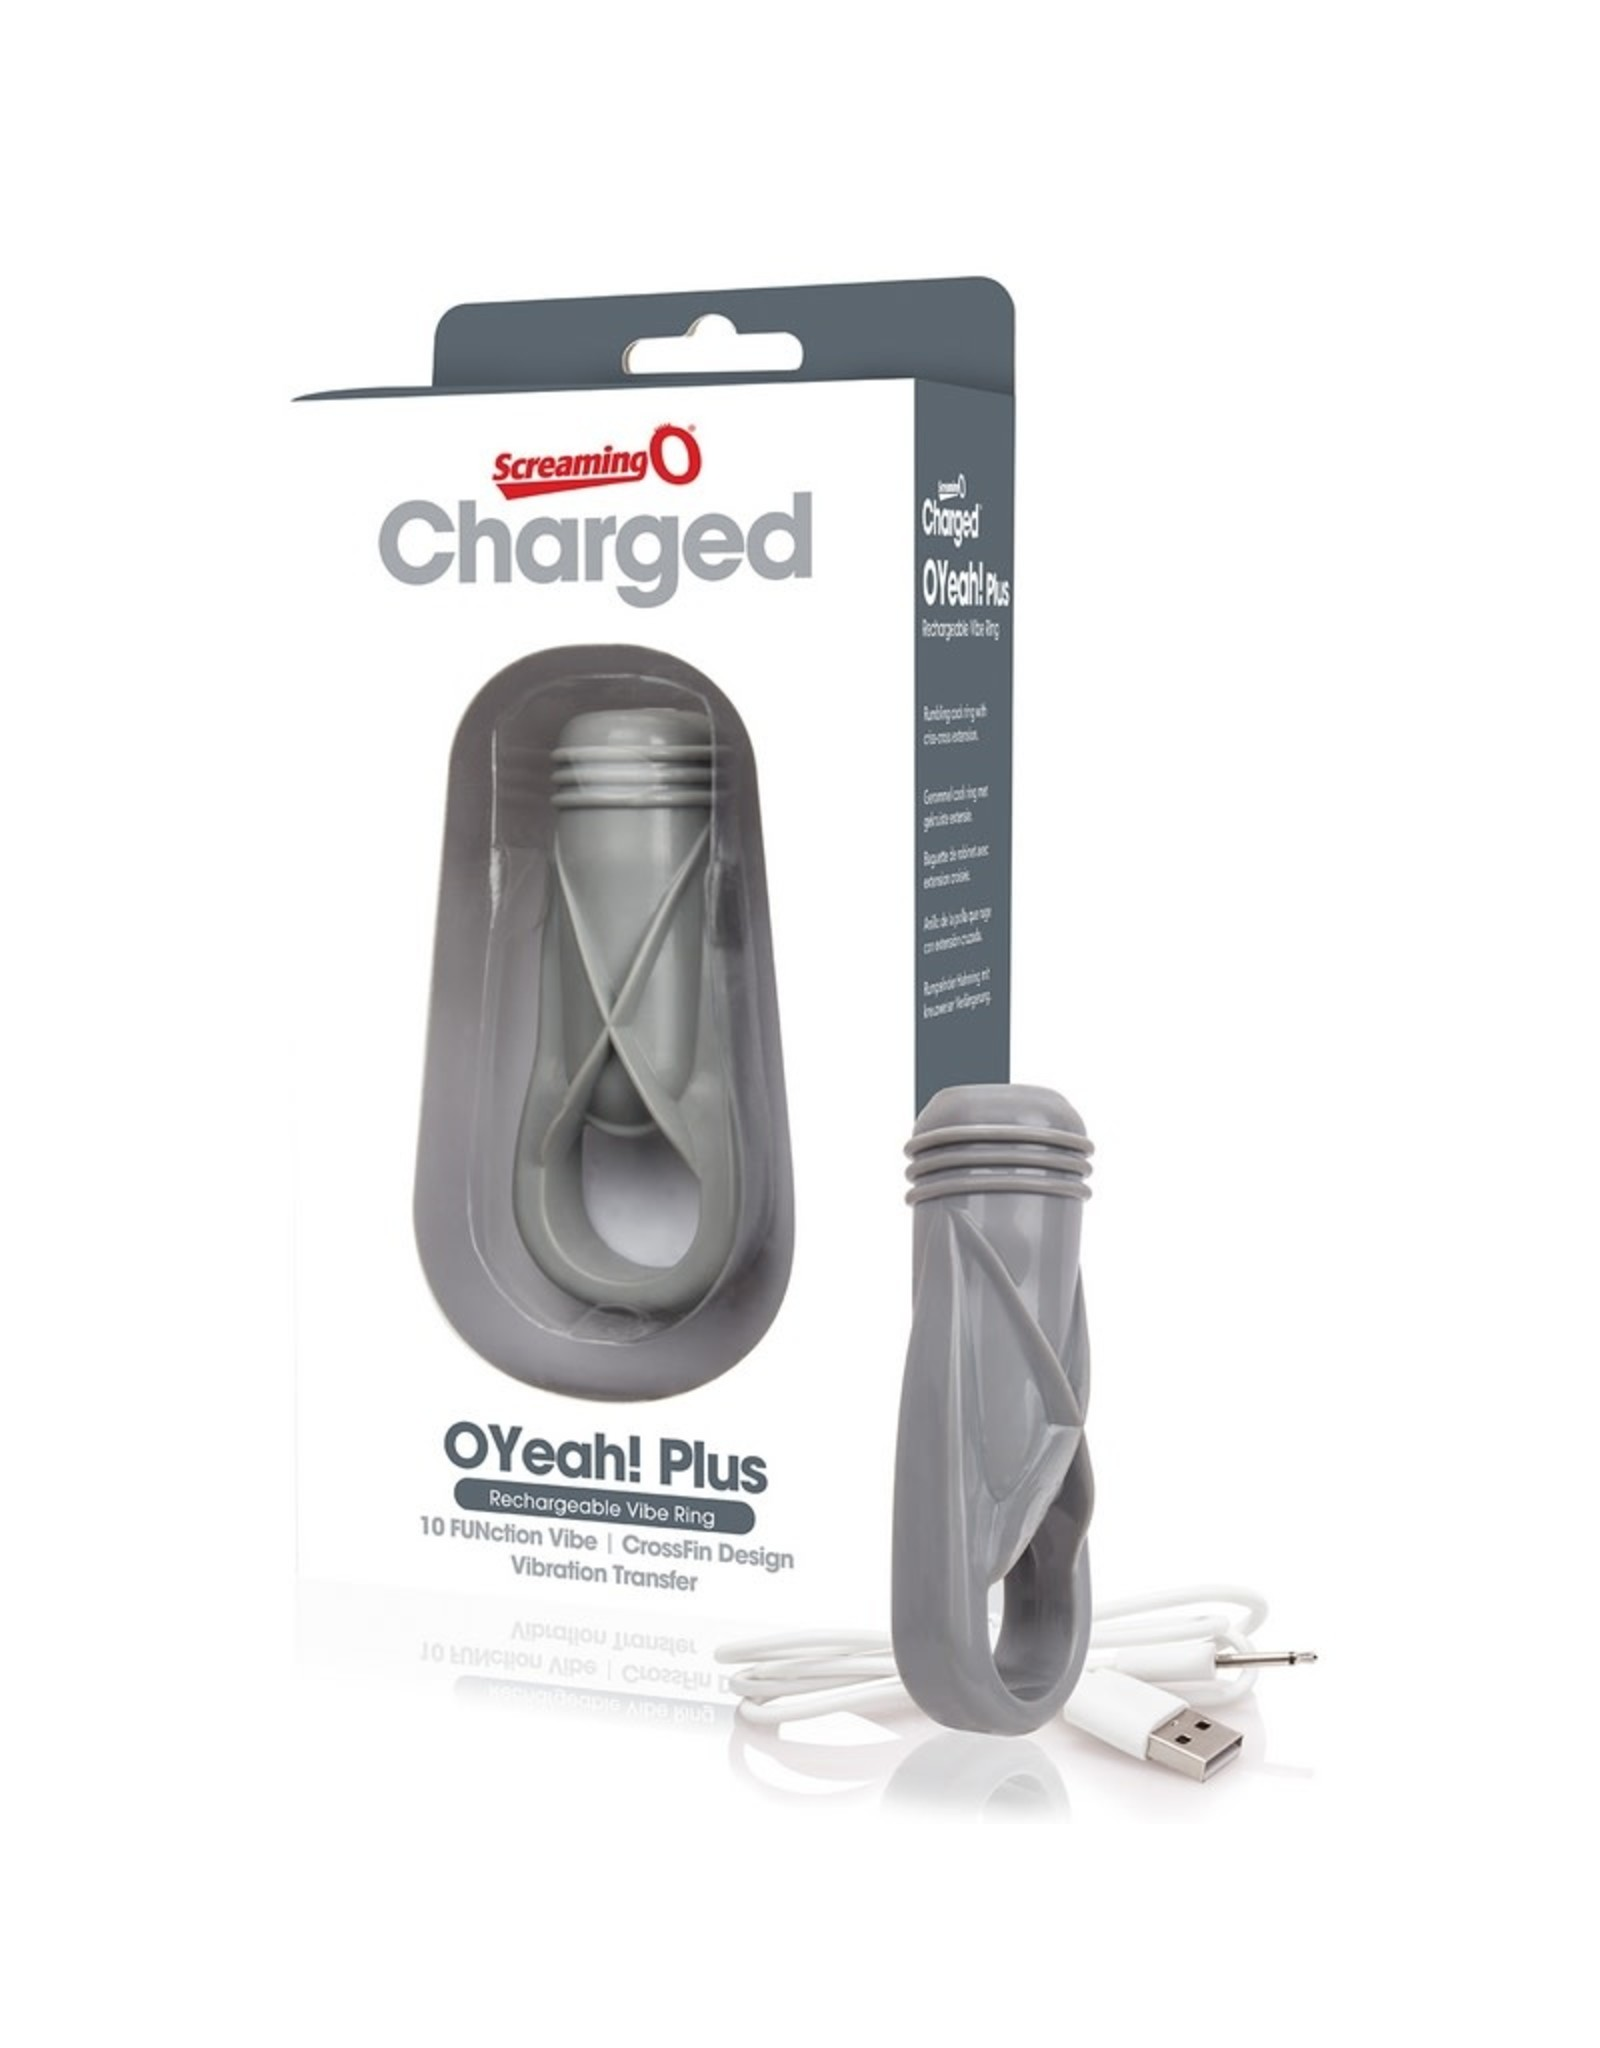 Screaming O ScreamingO Charged - OYeah! Plus - Rechargeable Vibe Ring